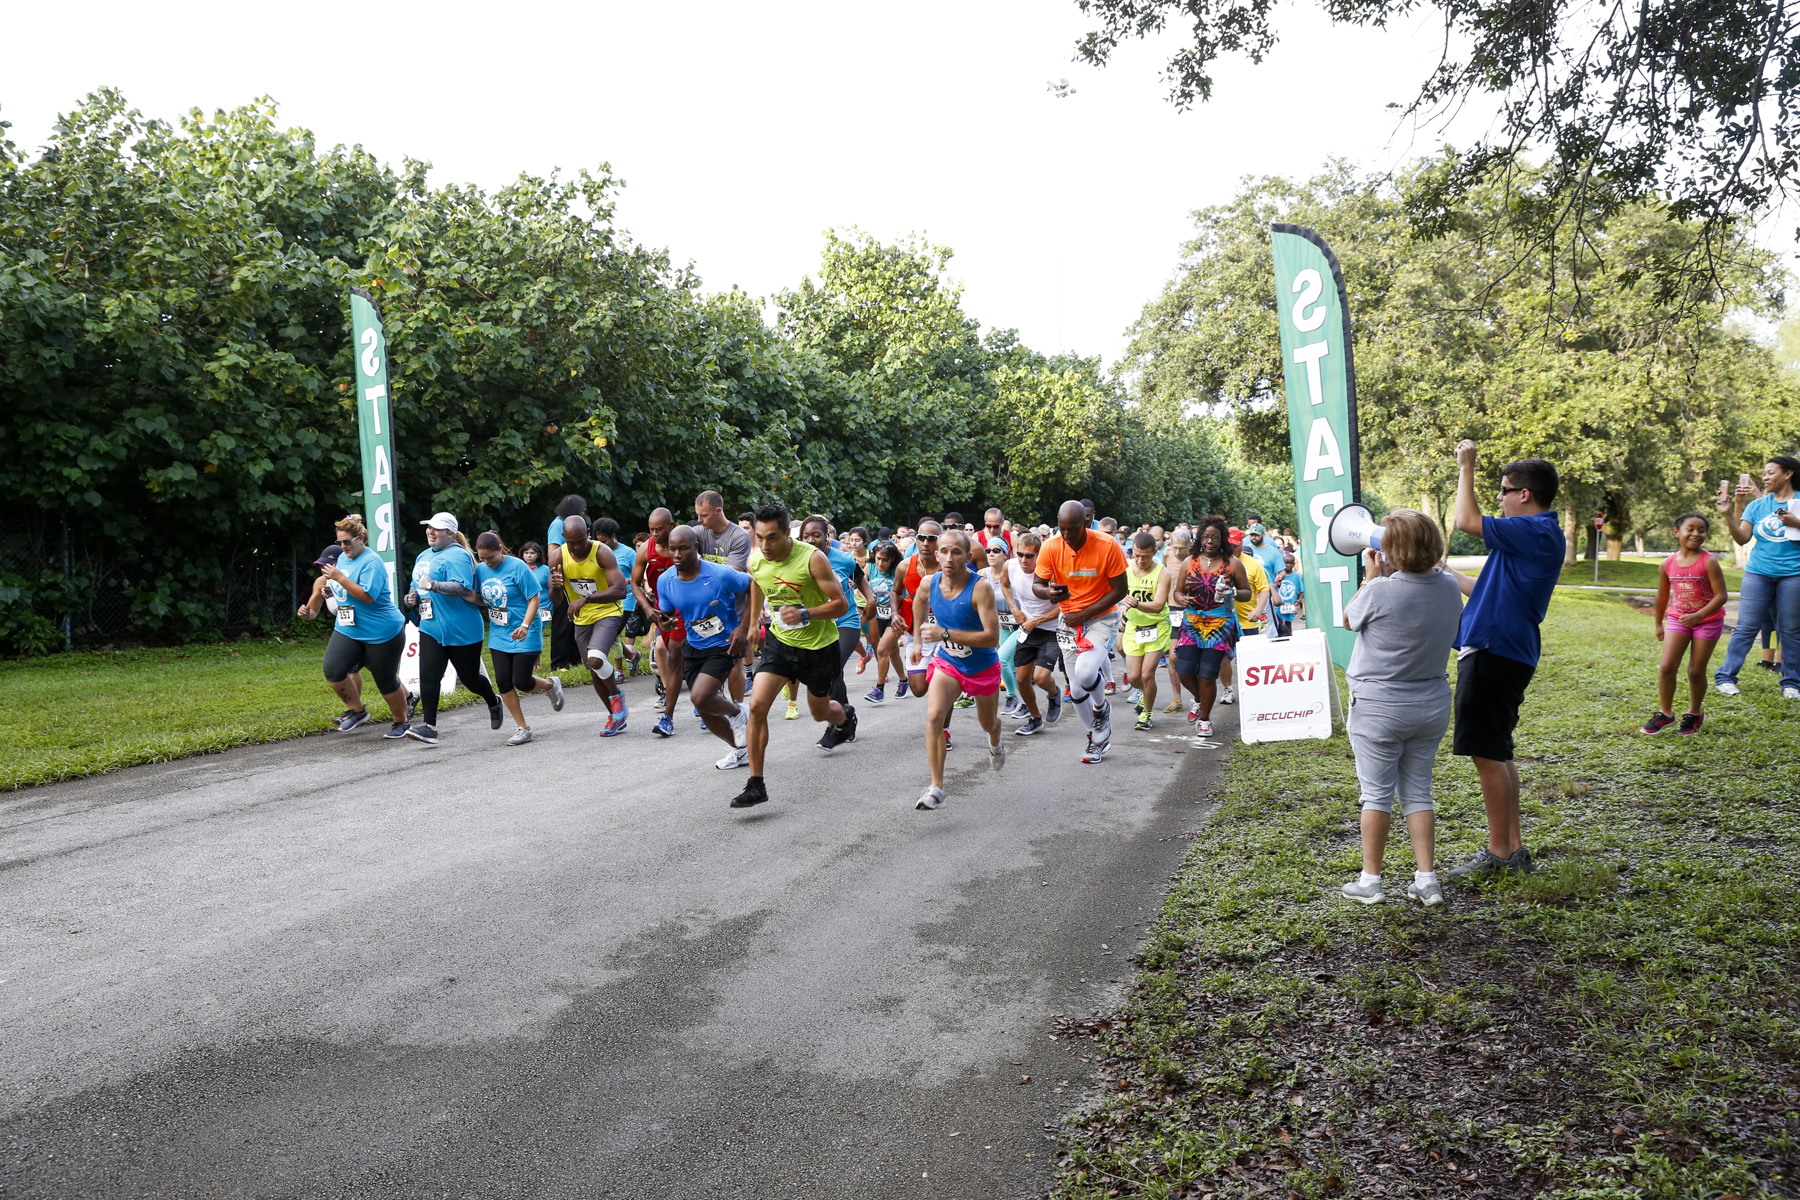 Kindah 0228 - Florida Teal 5K Run/ Fun Walk 2016